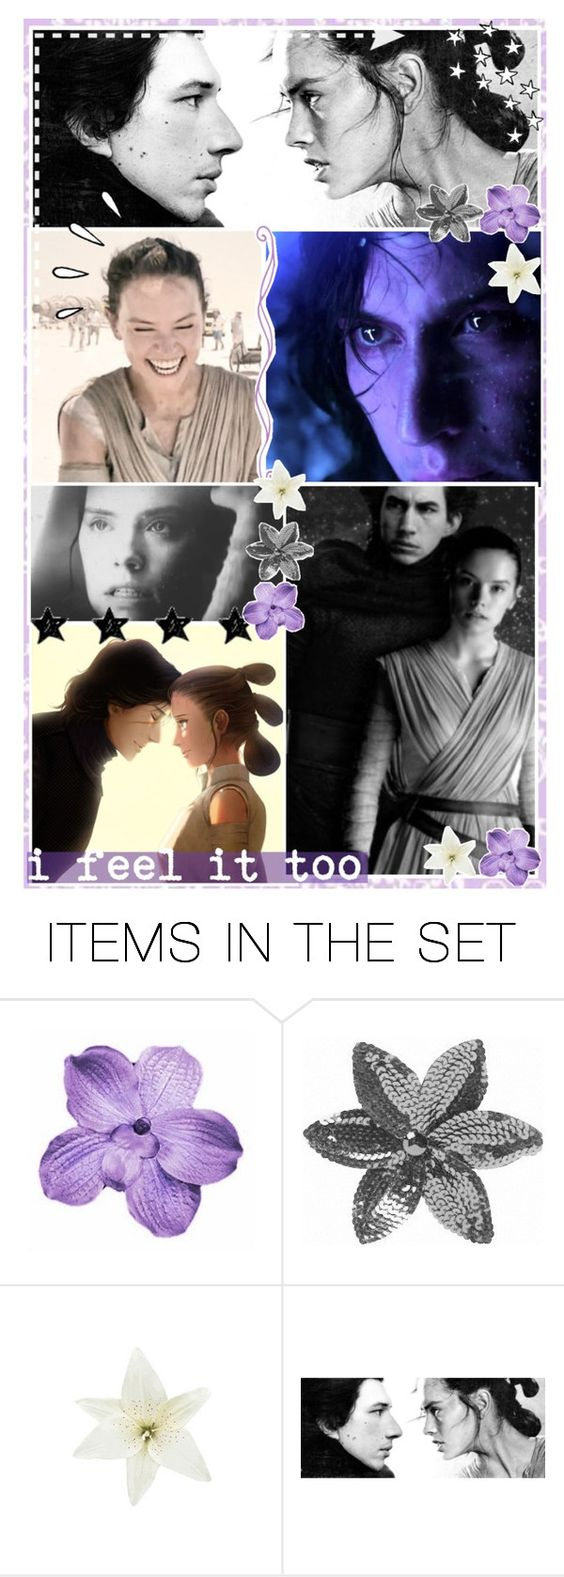 """requested wallpaper ♡ damiah"" by the-wallpaper-account ❤ liked on Polyvore featuring art and damiahswallpapers"